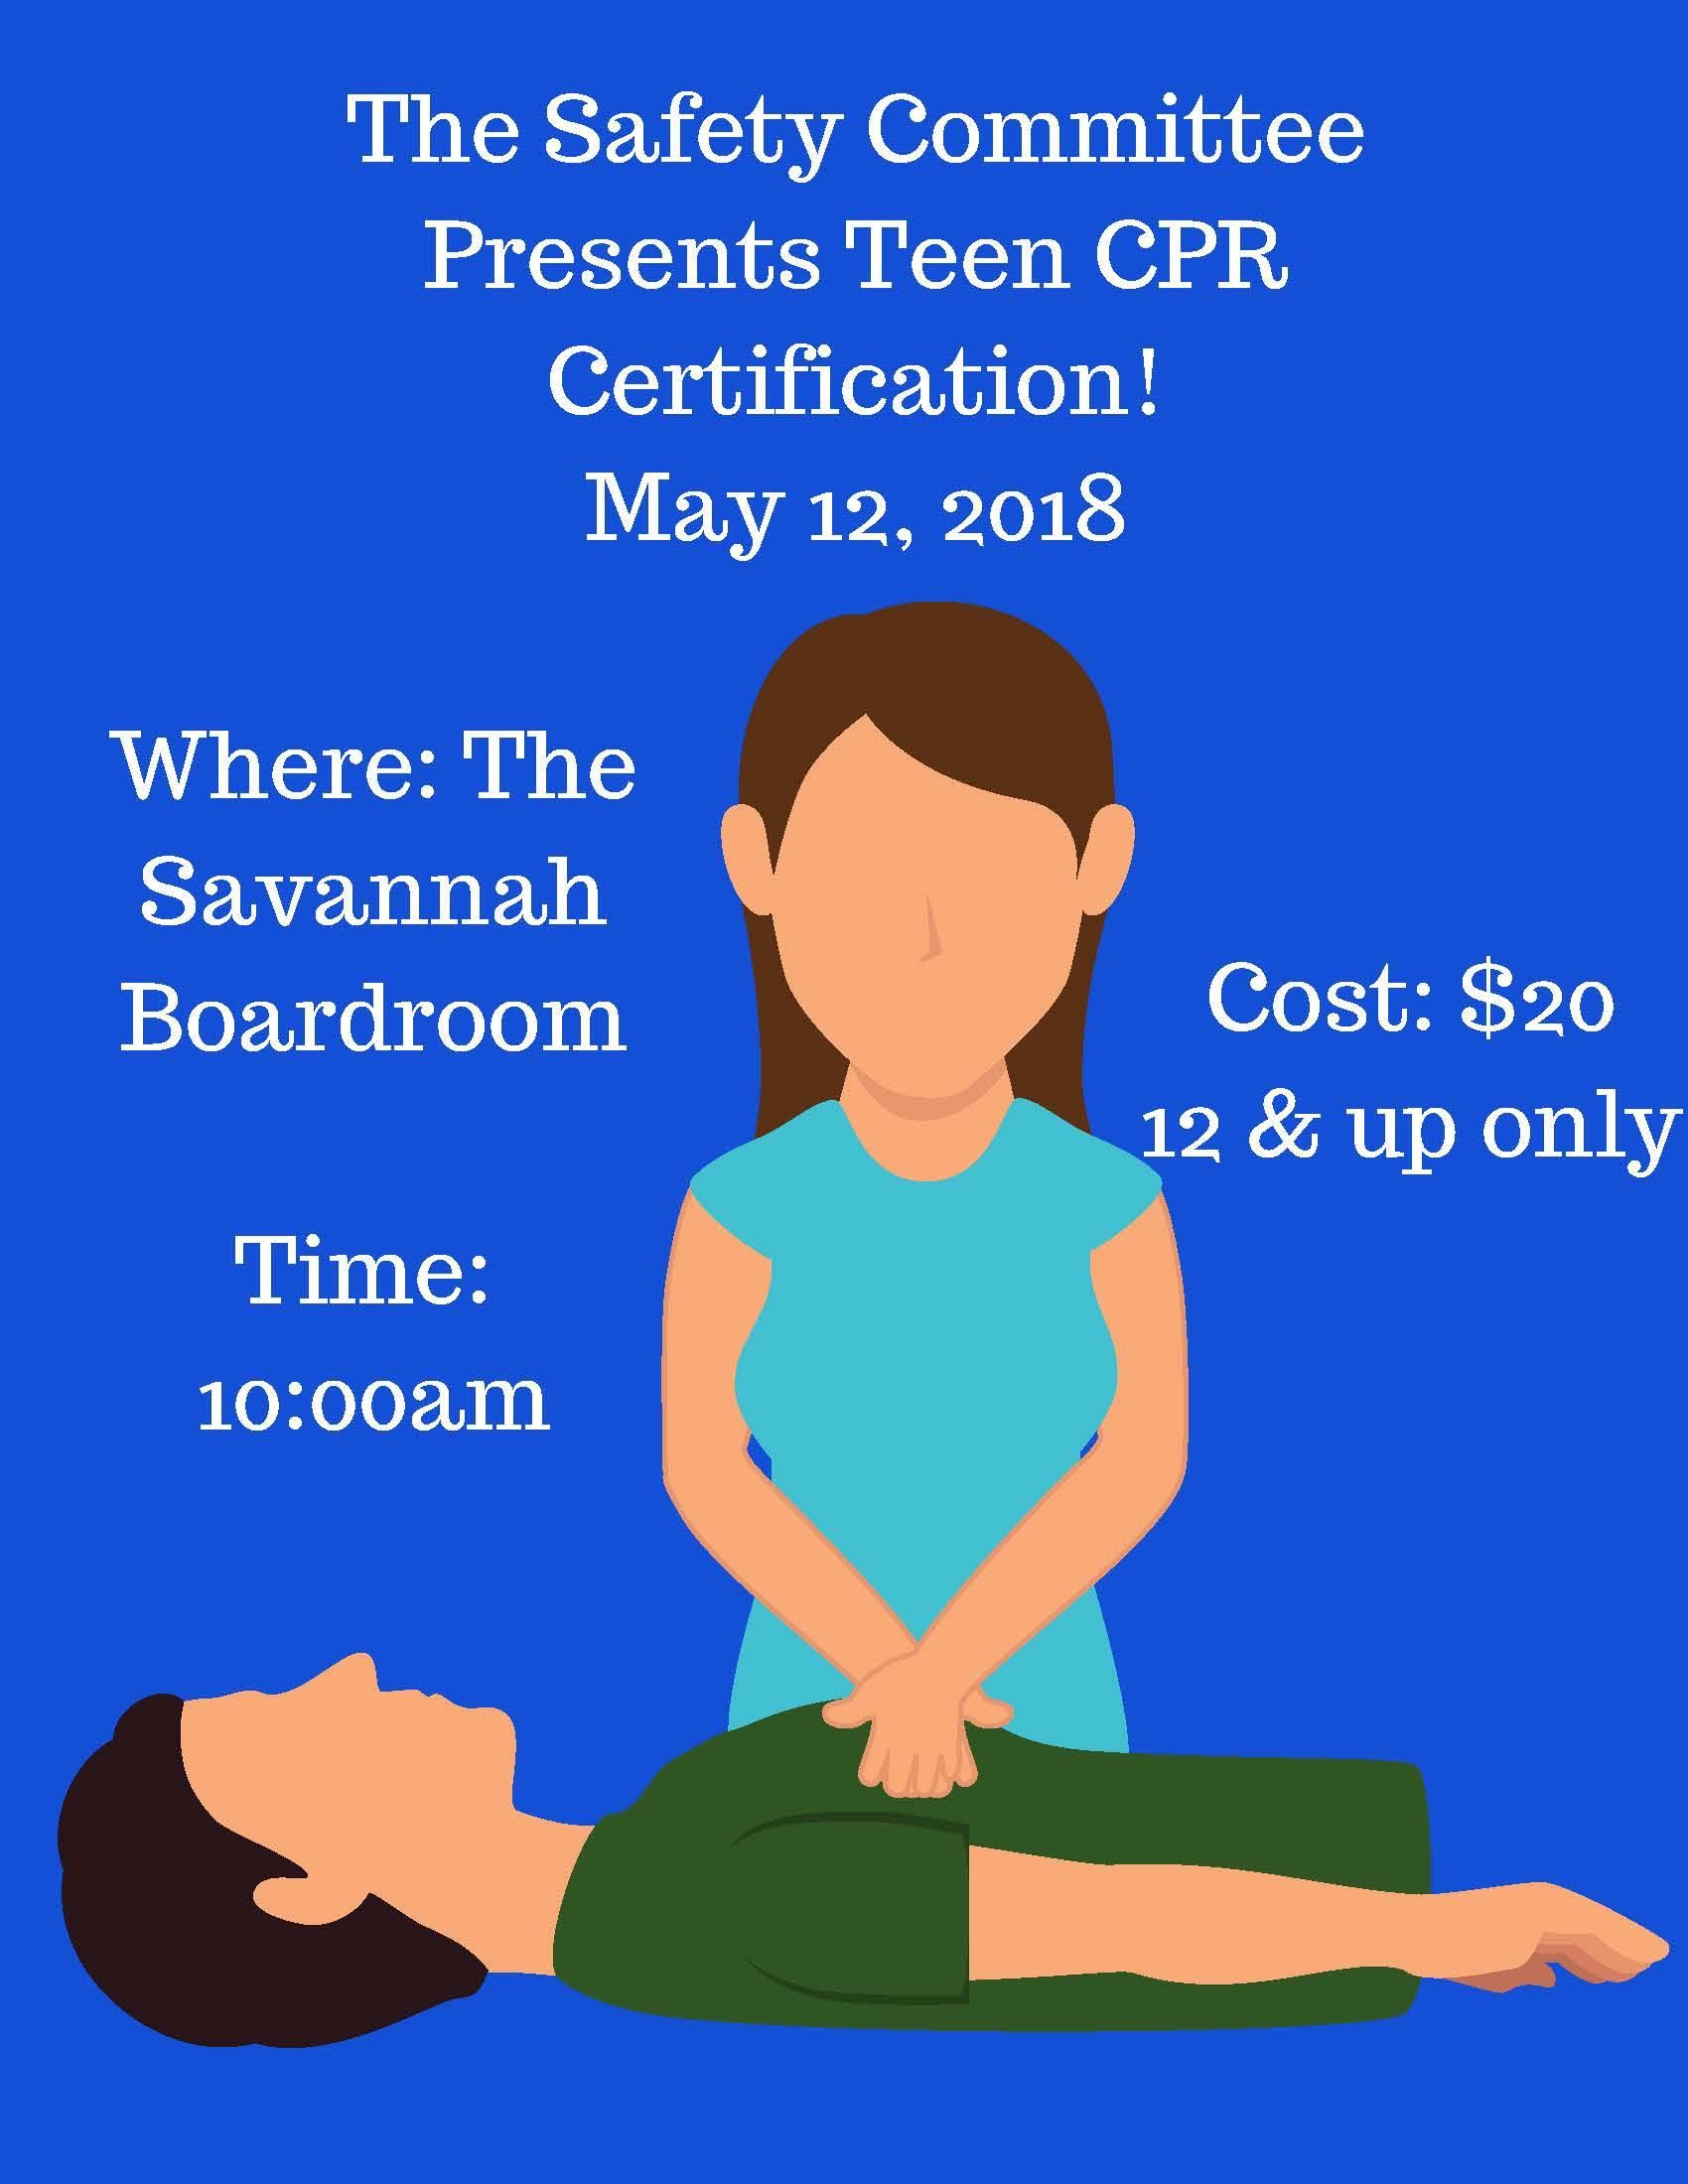 Please sign up to receive your CPR Certification by clicking the button below. The cost is $20 per person, and must be received in the clubhouse no later than Thursday, May 10, 2018.